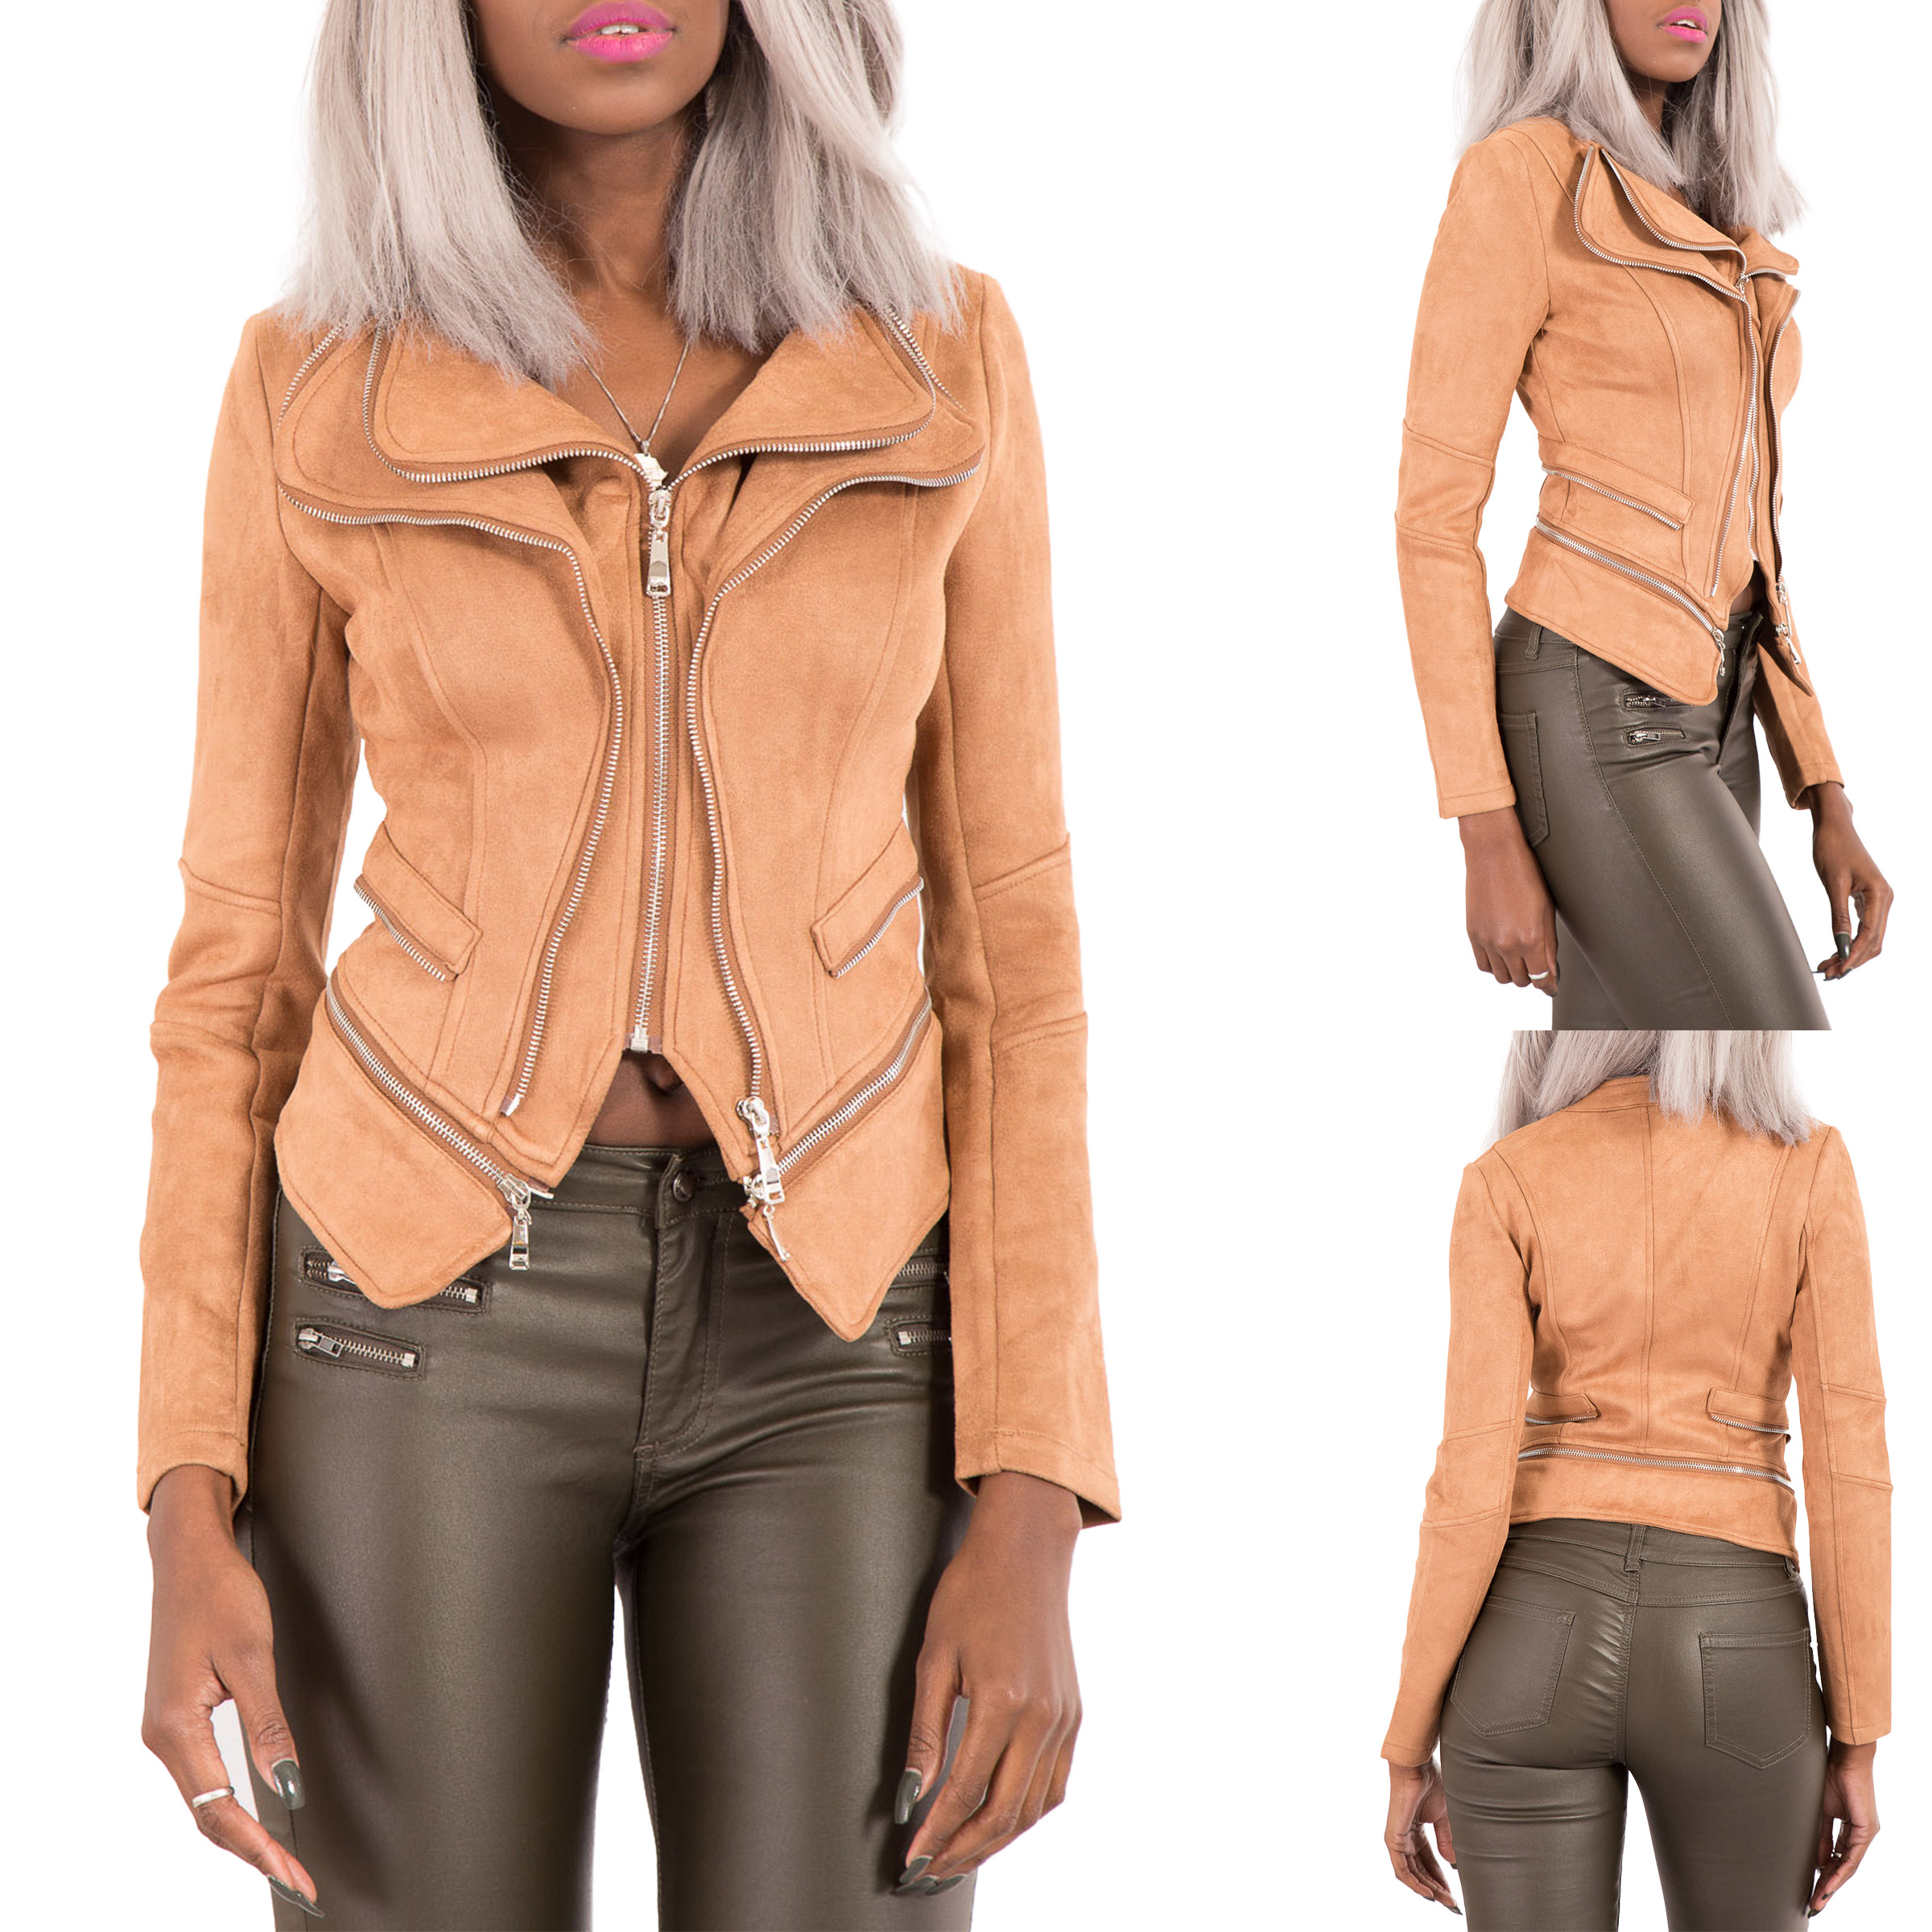 NEW-WOMEN-LEATHER-BIKER-JACKET-QUILTED-PANEL-White-Black-Red-Coat-Size-6-14